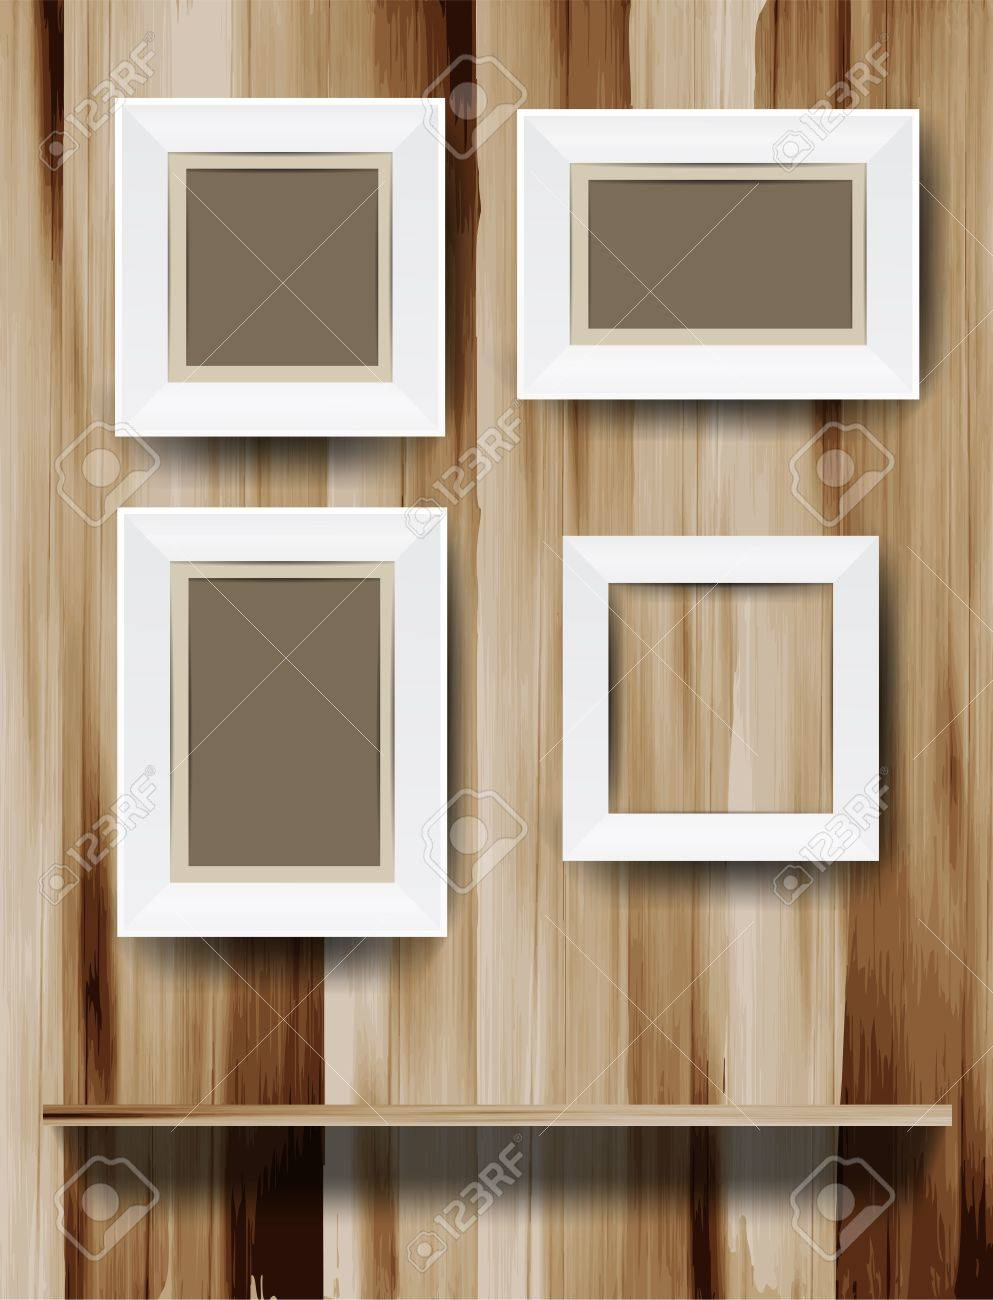 white modern frames on wood wall vector illustration royalty free  - white modern frames on wood wall vector illustration stock vector